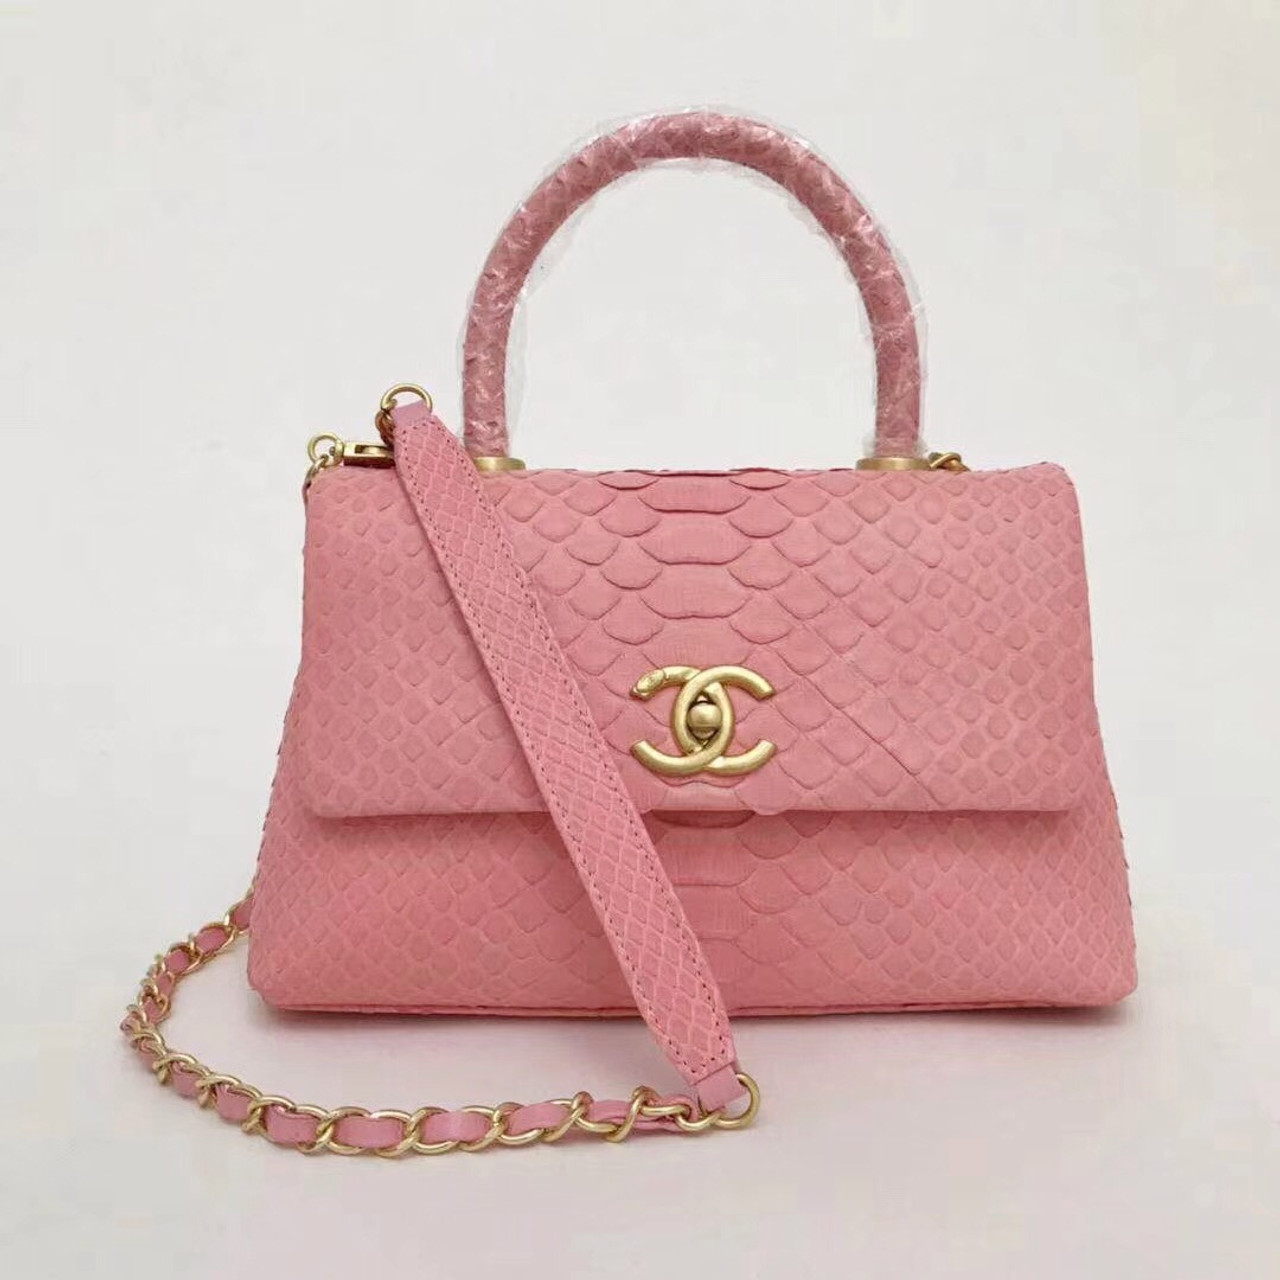 f70e26540a56 Chanel Small Pink Python Flap Bag With Top Handle - Bella Vita Moda